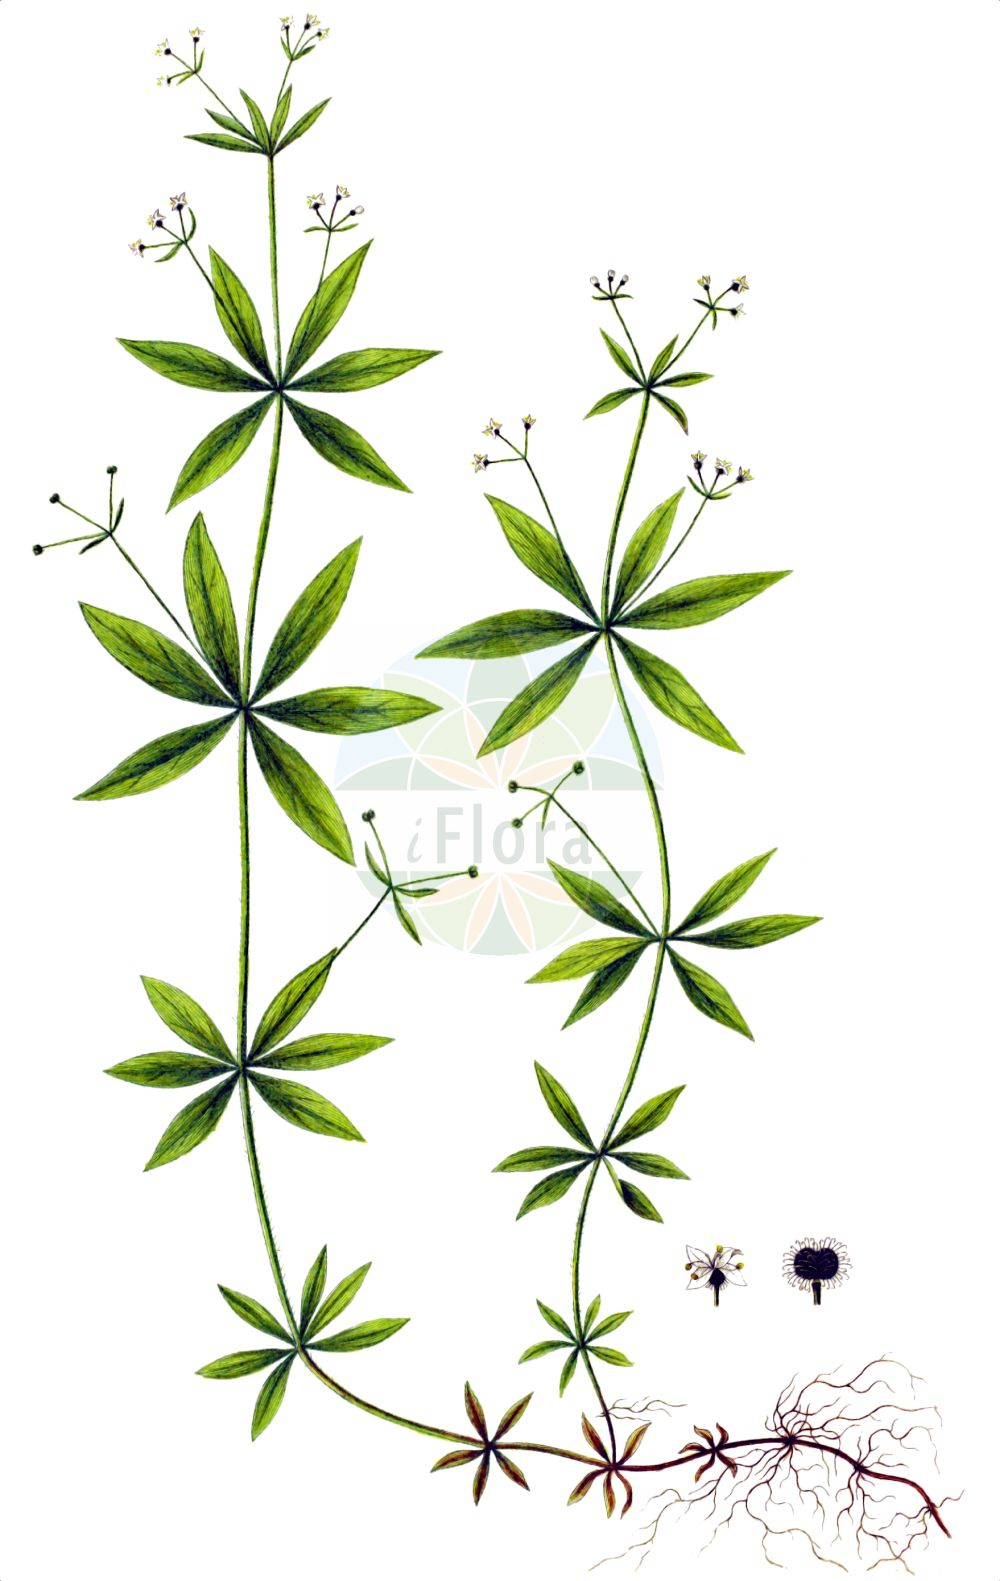 Historische Abbildung von Galium triflorum. Das Bild zeigt Blatt, Bluete, Frucht und Same. ---- Historical Drawing of Galium triflorum.The image is showing leaf, flower, fruit and seed.(Galium triflorum,Galium triflorum,Galium,Labkraut,Bedstraw,Rubiaceae,Roetegewaechse,Kaffeegewaechse,Krappgewaechse,Labkrautgewaechse,Bedstraw family,Blatt,Bluete,Frucht,Same,leaf,flower,fruit,seed,Oeder (1761-1883))